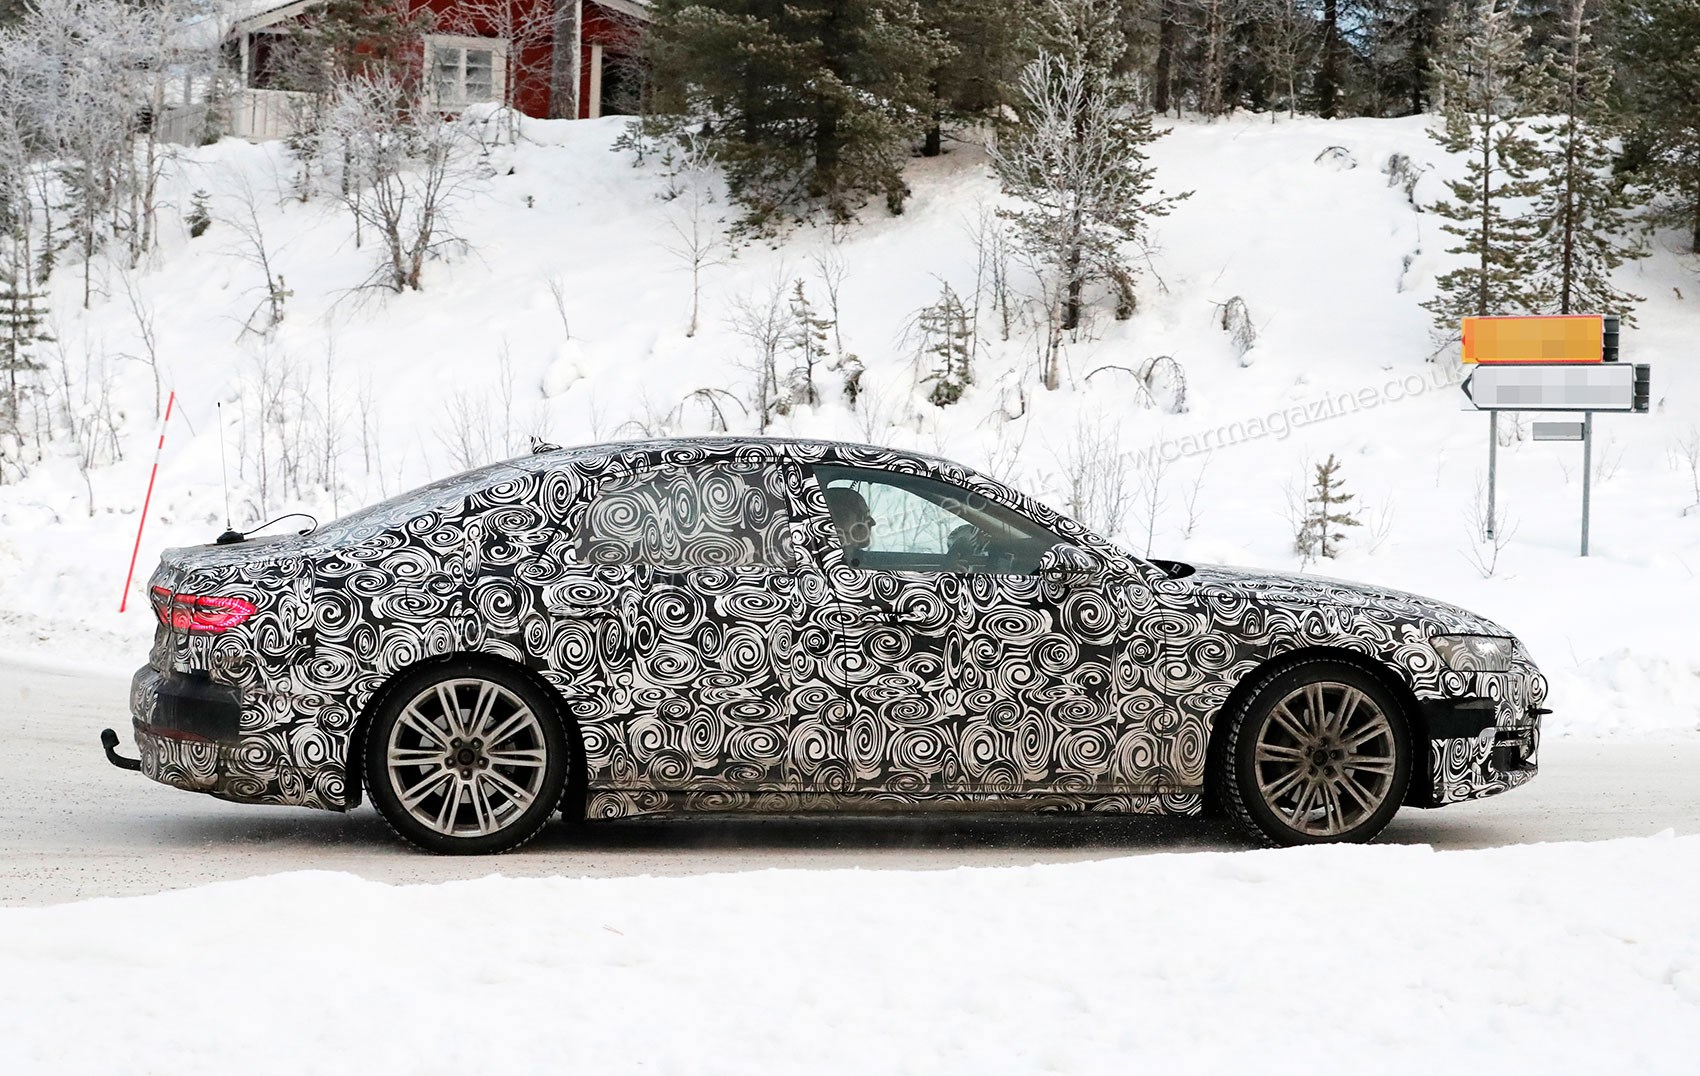 New Audi S Punchy Limo Spotted At The Limit On Test CAR Magazine - 2018 audi s8